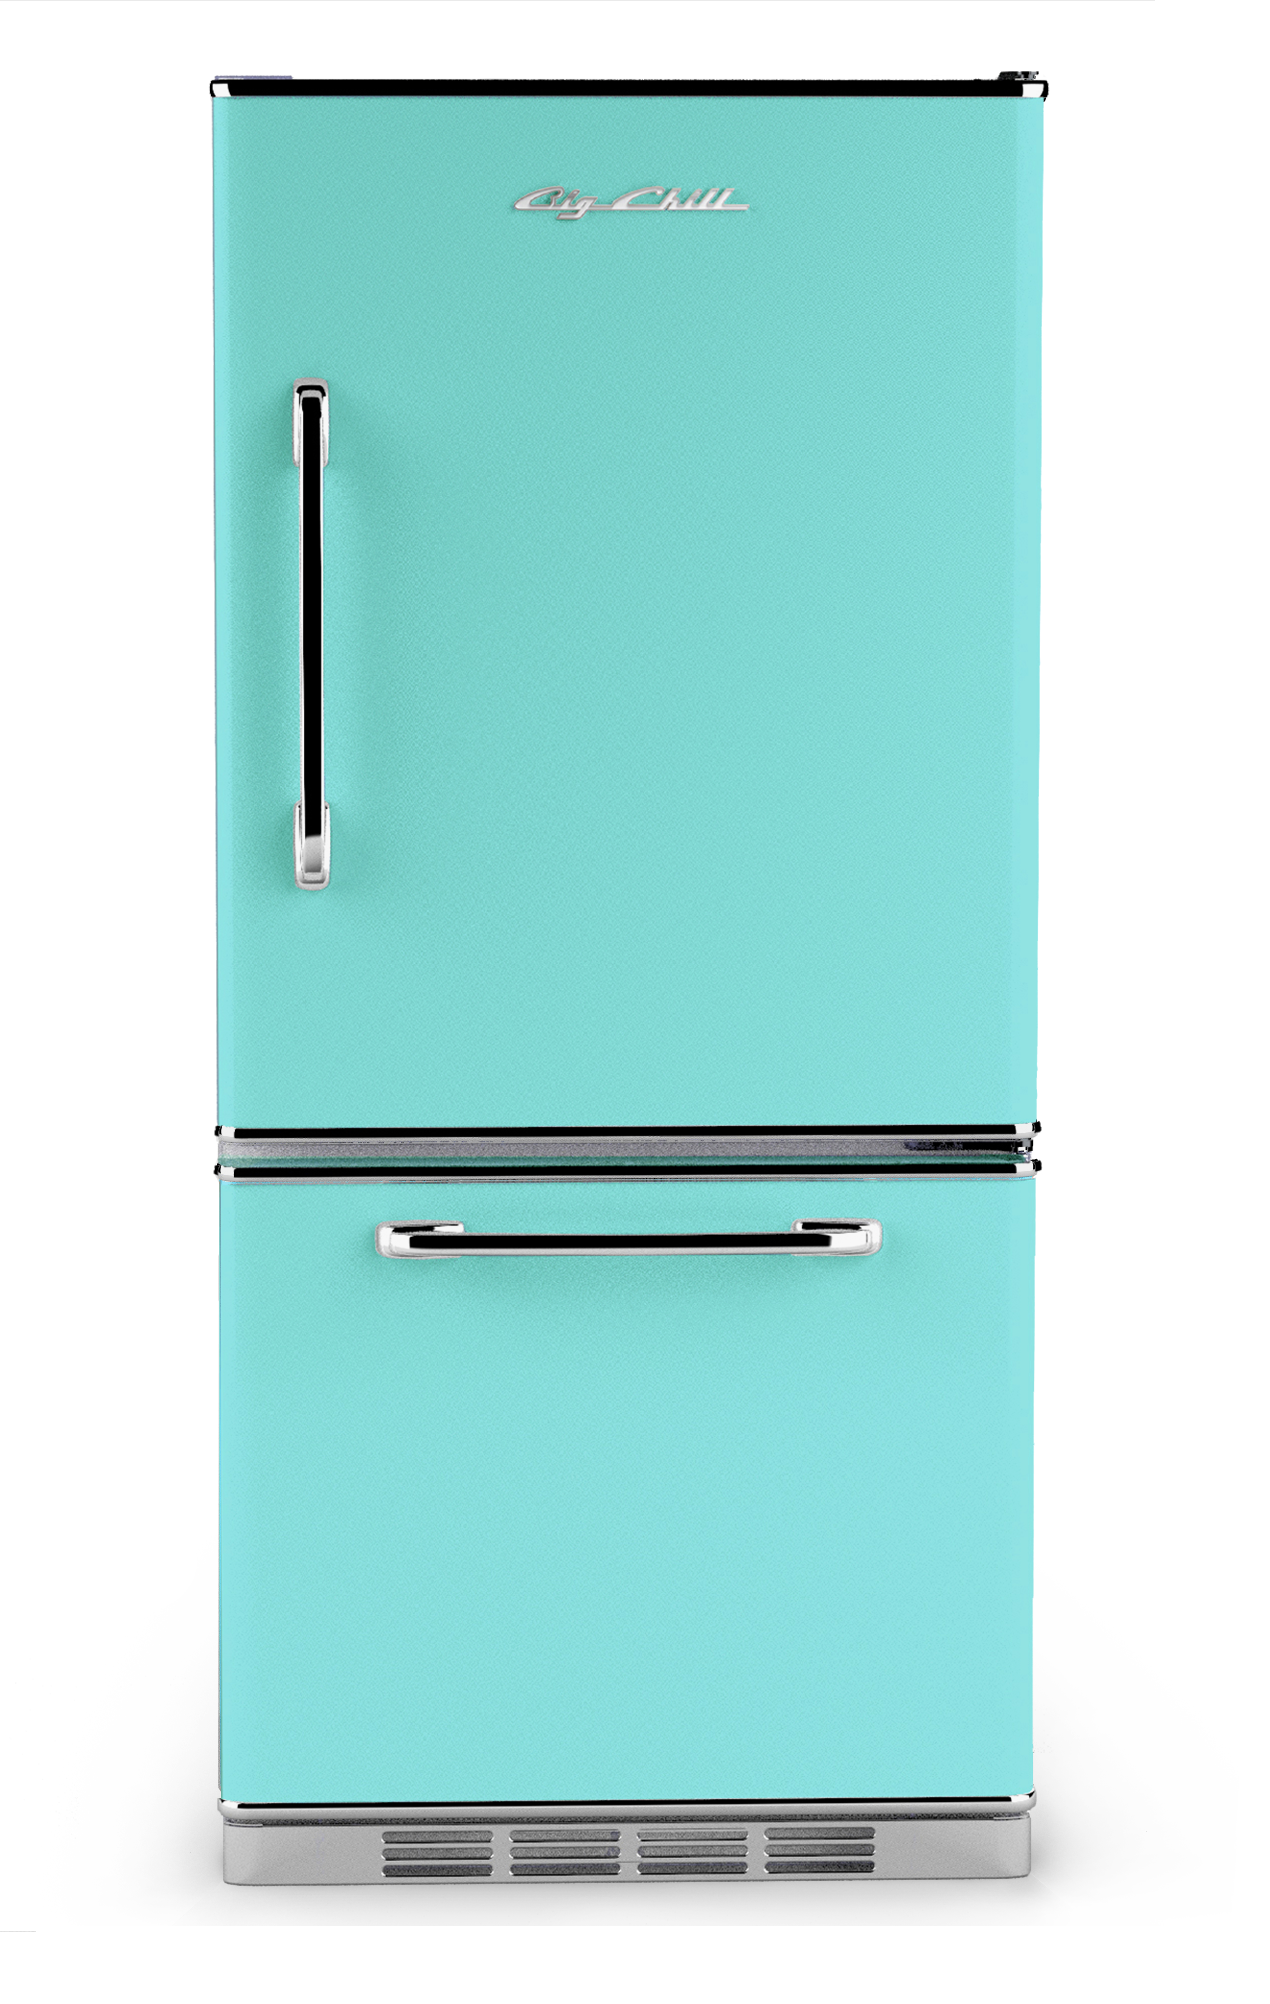 Fridges Shop Professional Retro Appliances Retro Fridge Modern Refrigerators Retro Refrigerator